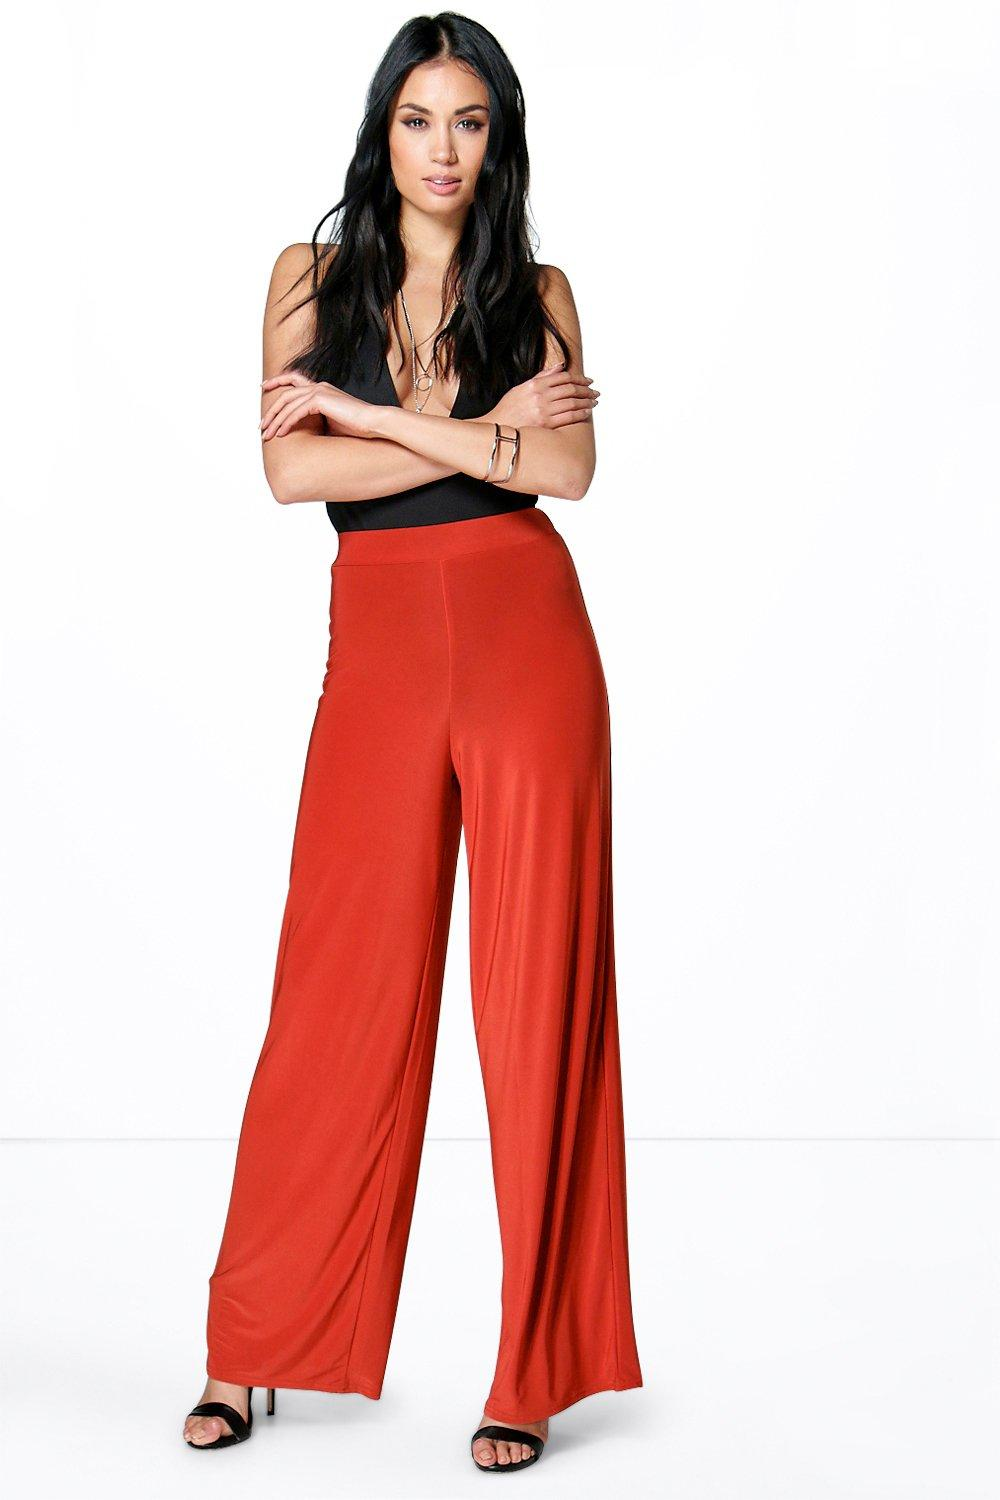 Slinky Floor Sweeping Wide Leg Trousers spice